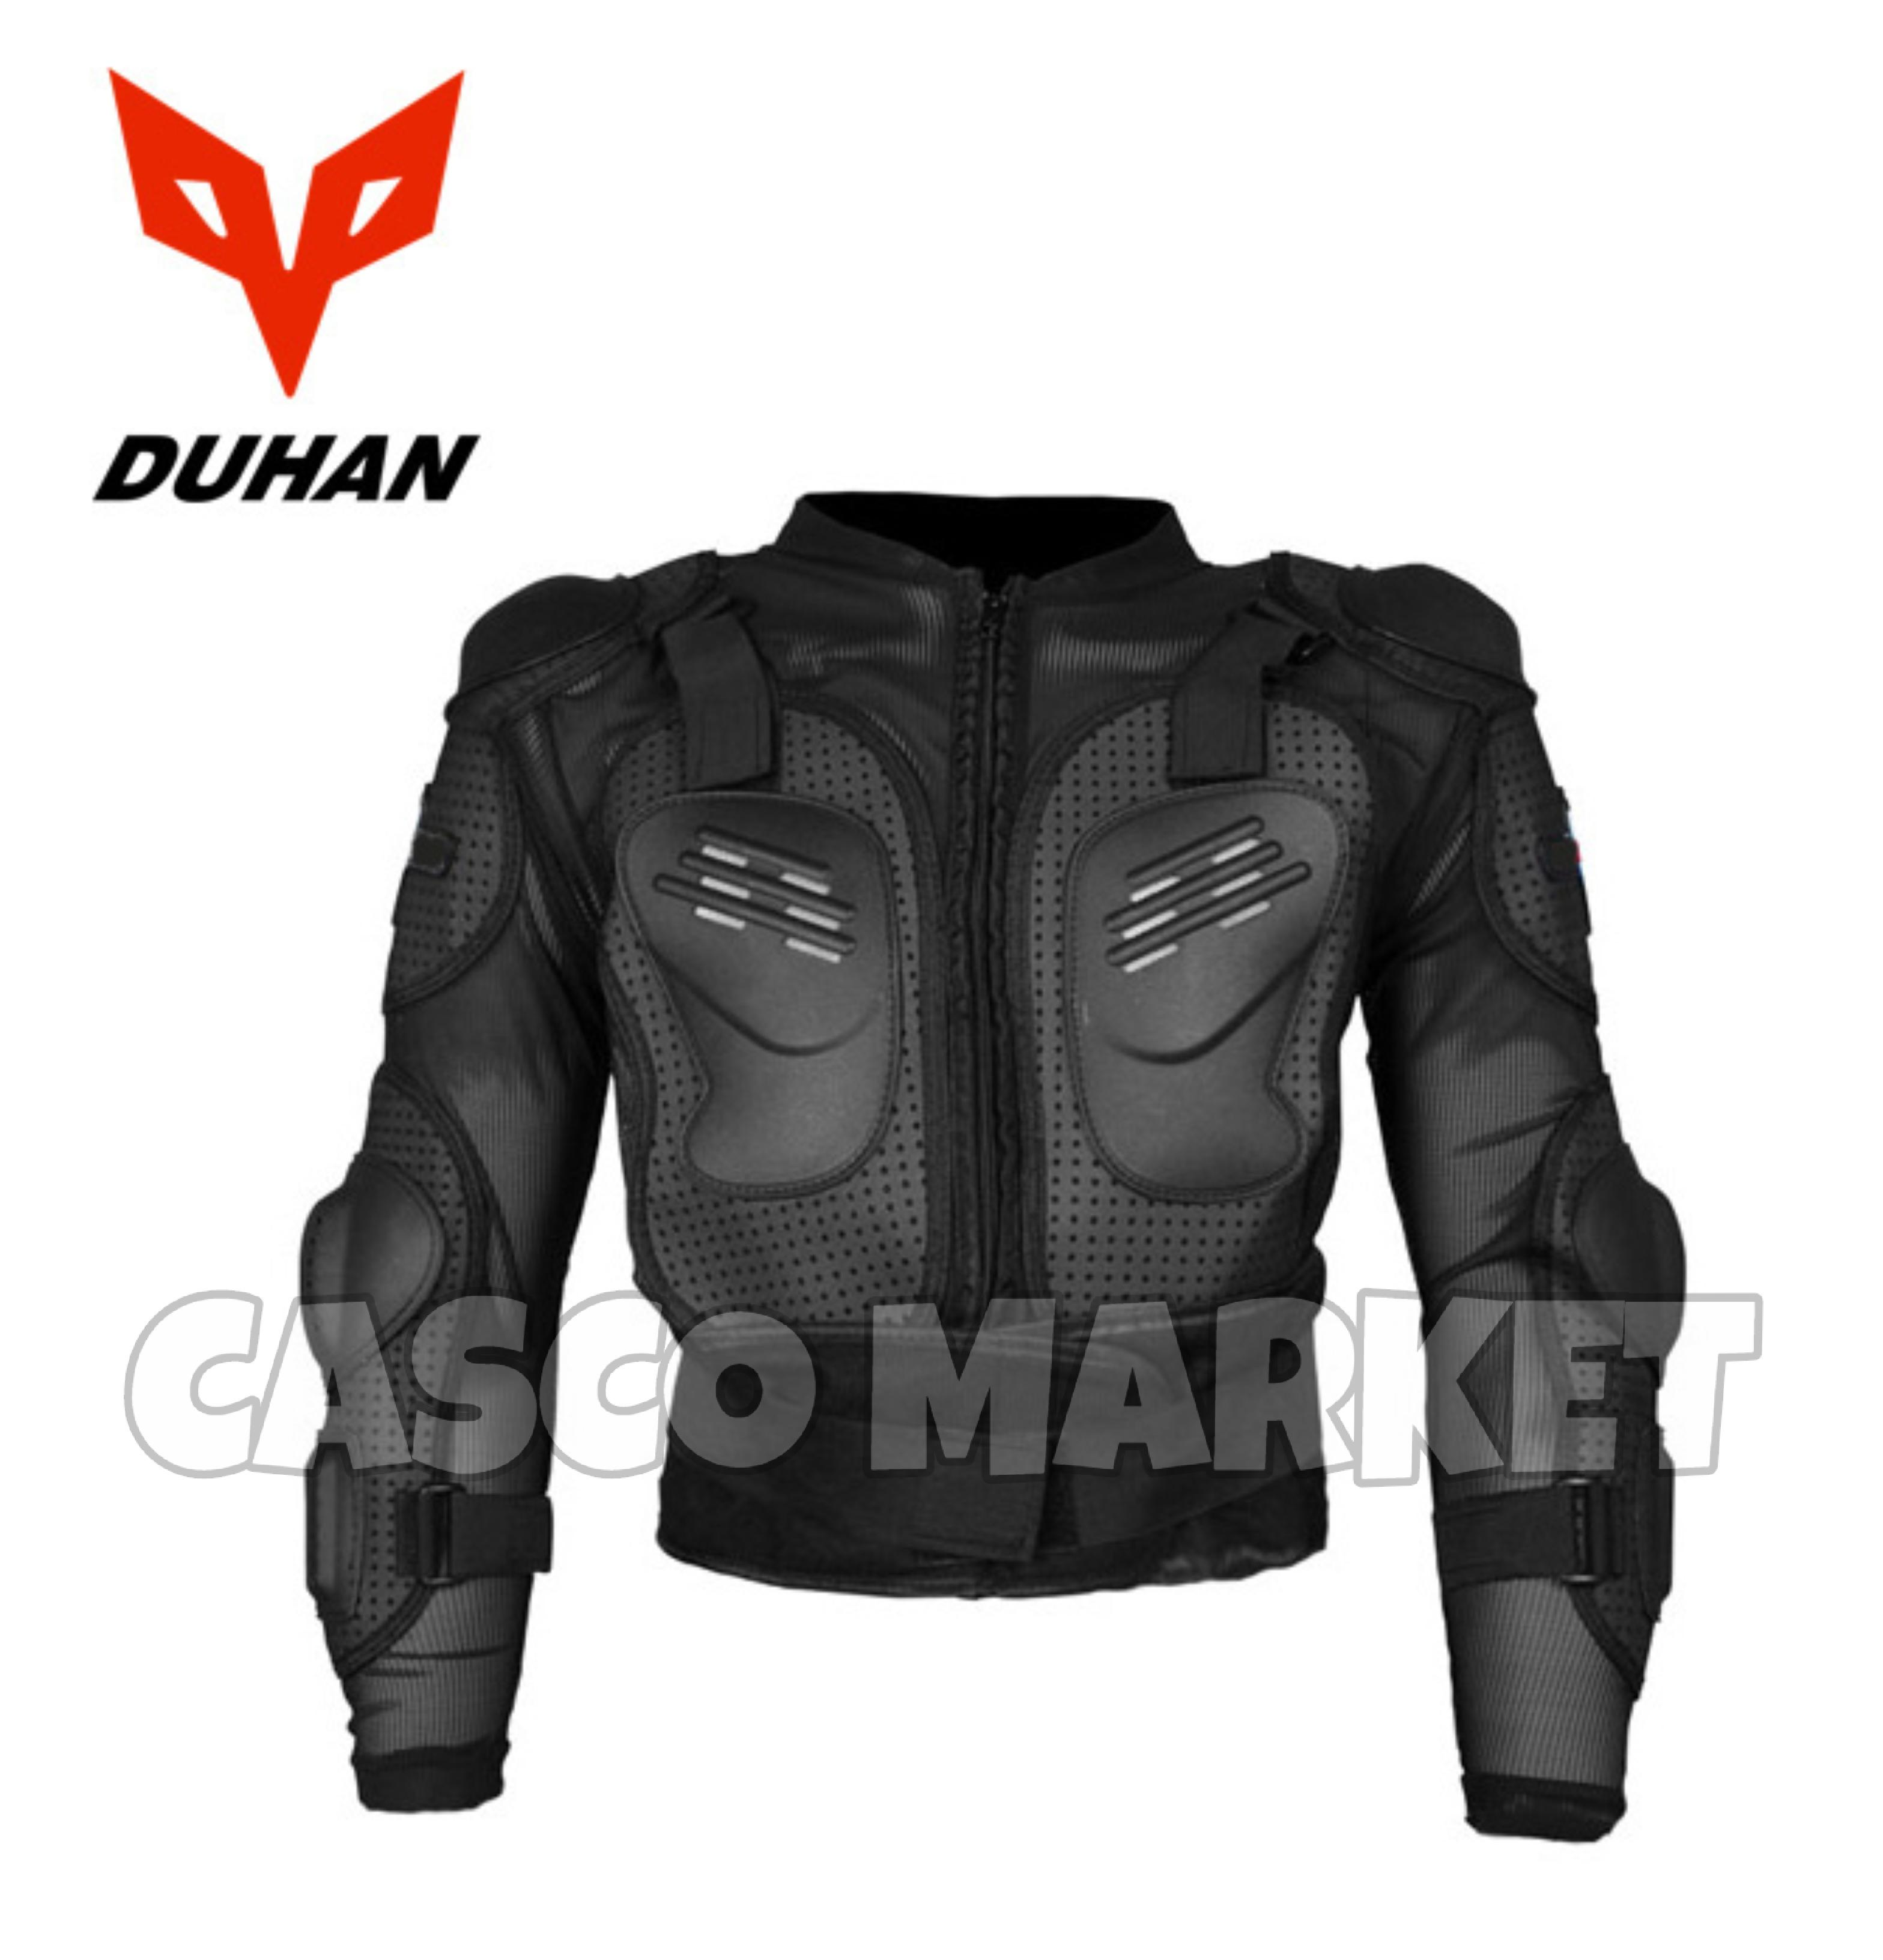 11c4c53d2 DUHAN Moto Fox Armor Motorcross Mx off road gear one size adjustable Full  Body Armor Jacket motocross protective Gear